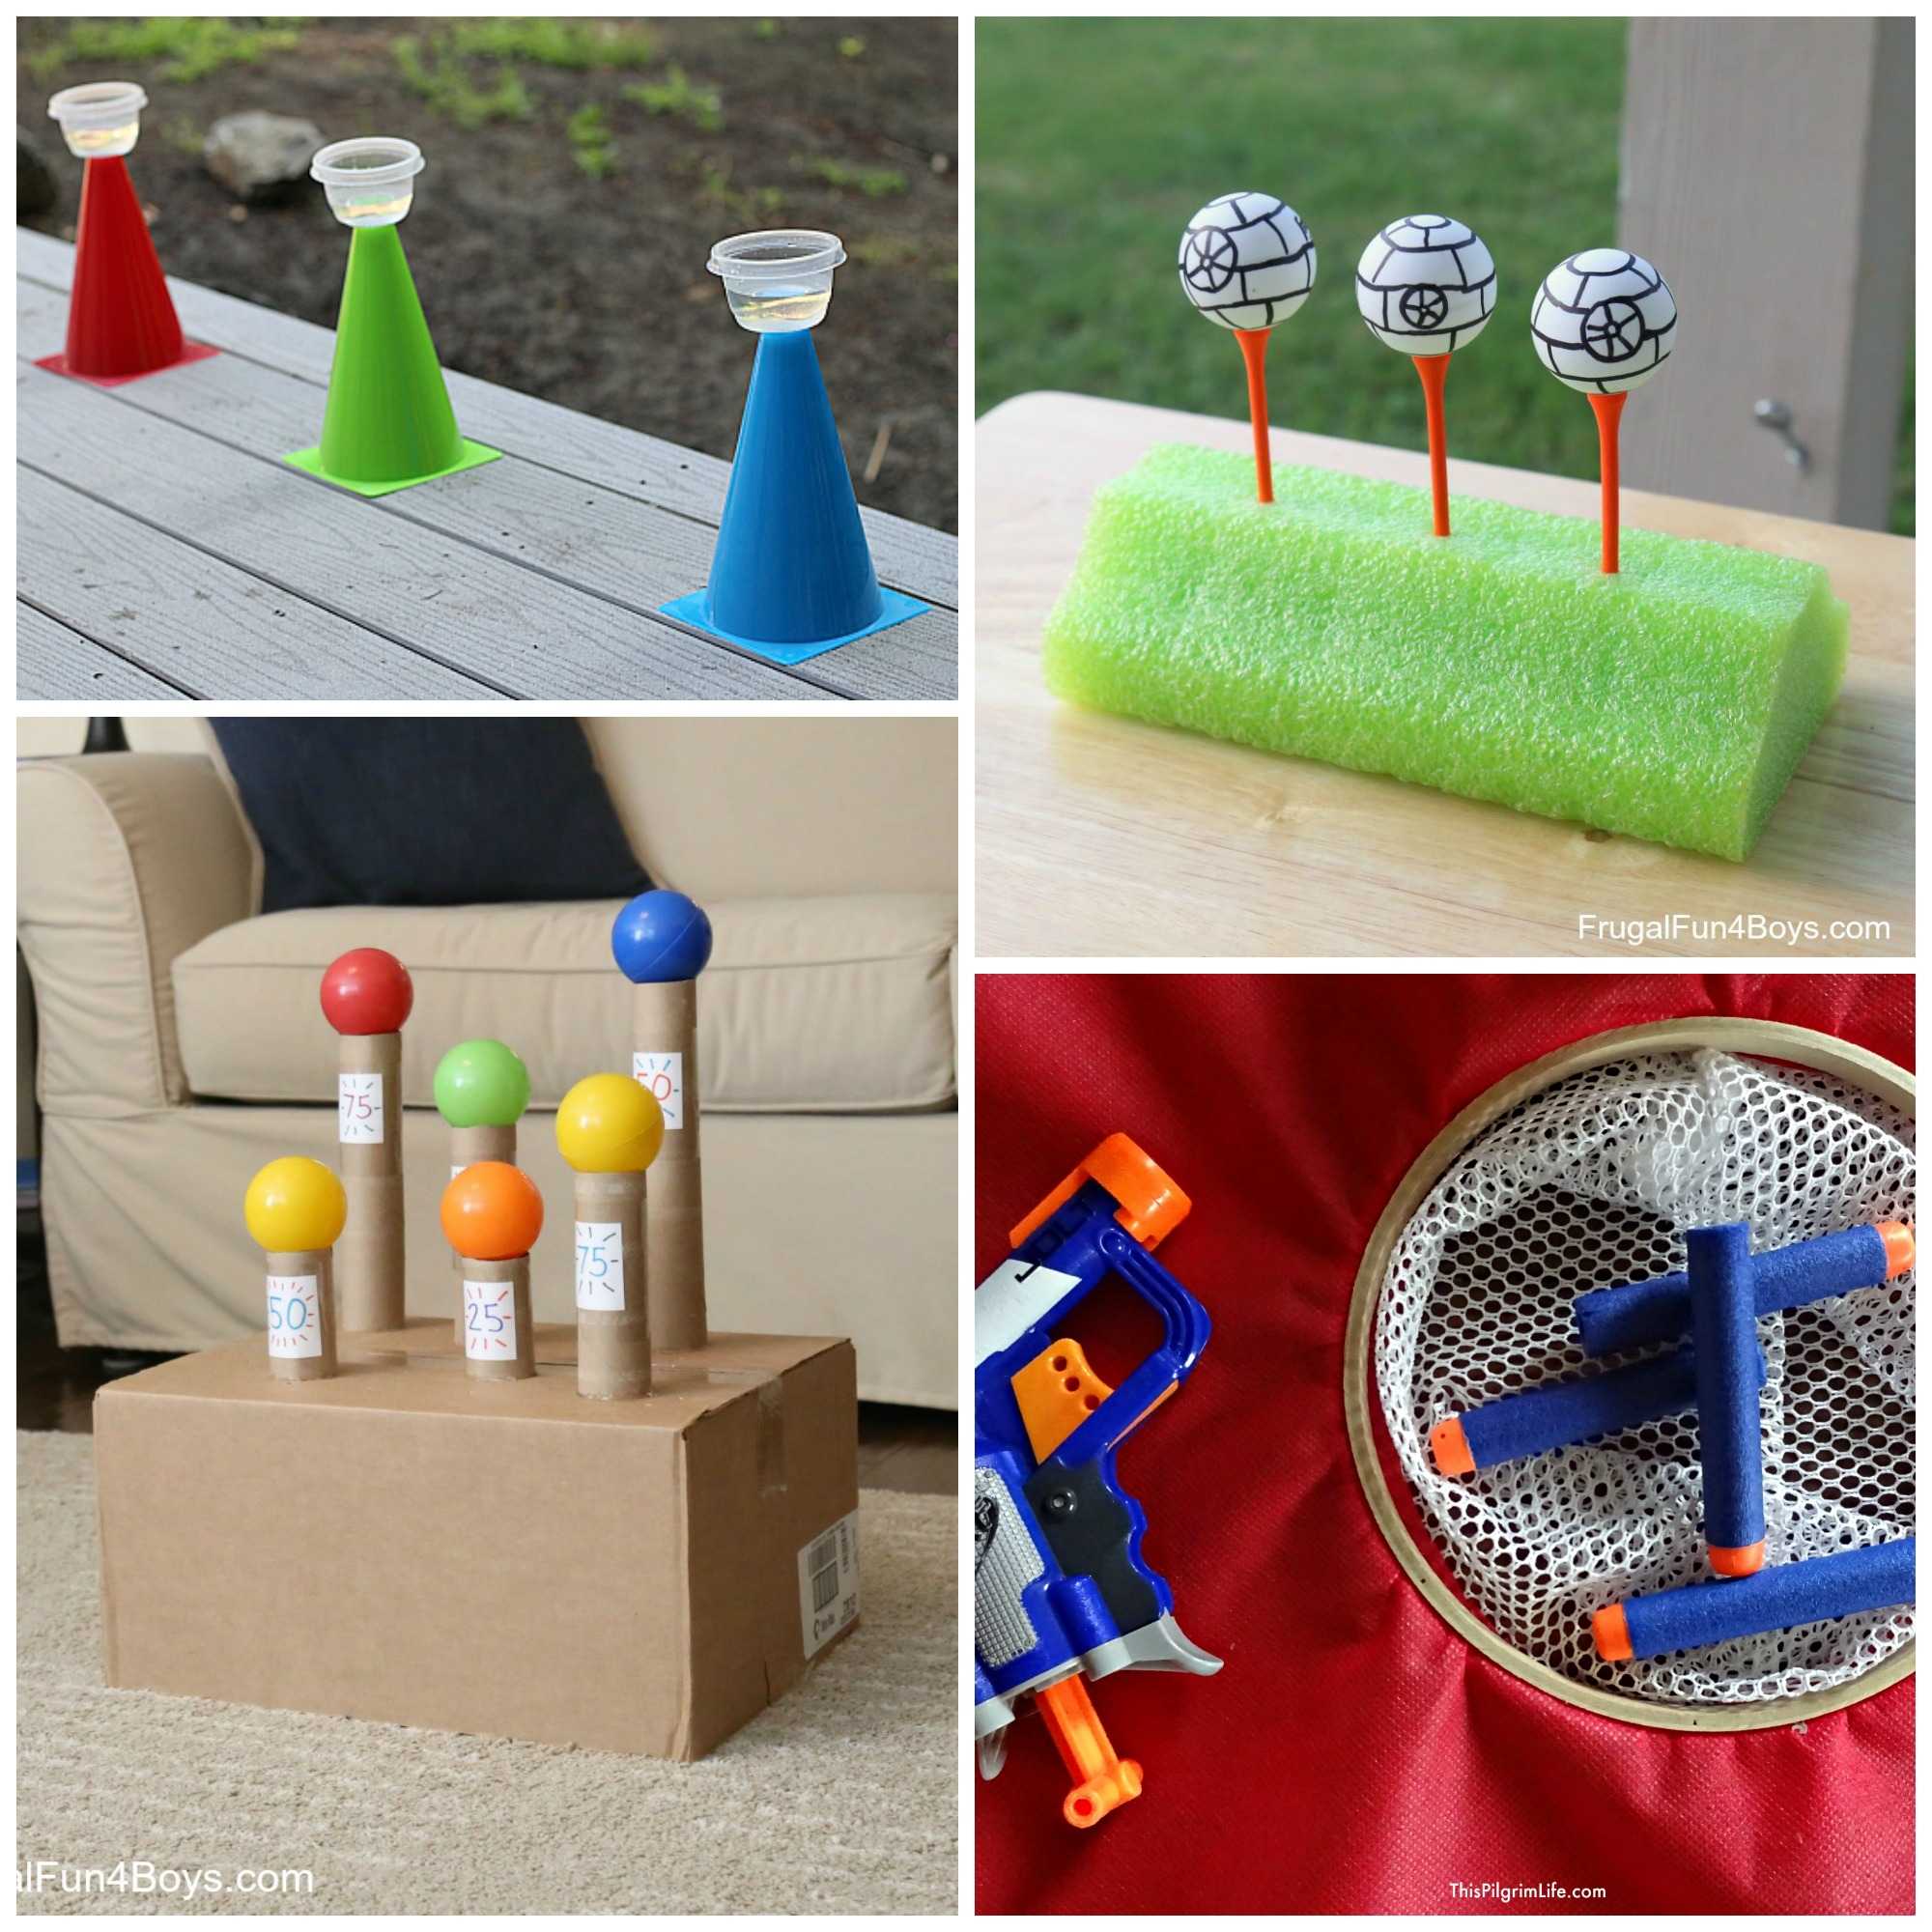 Super Awesome Nerf Target Games to Make